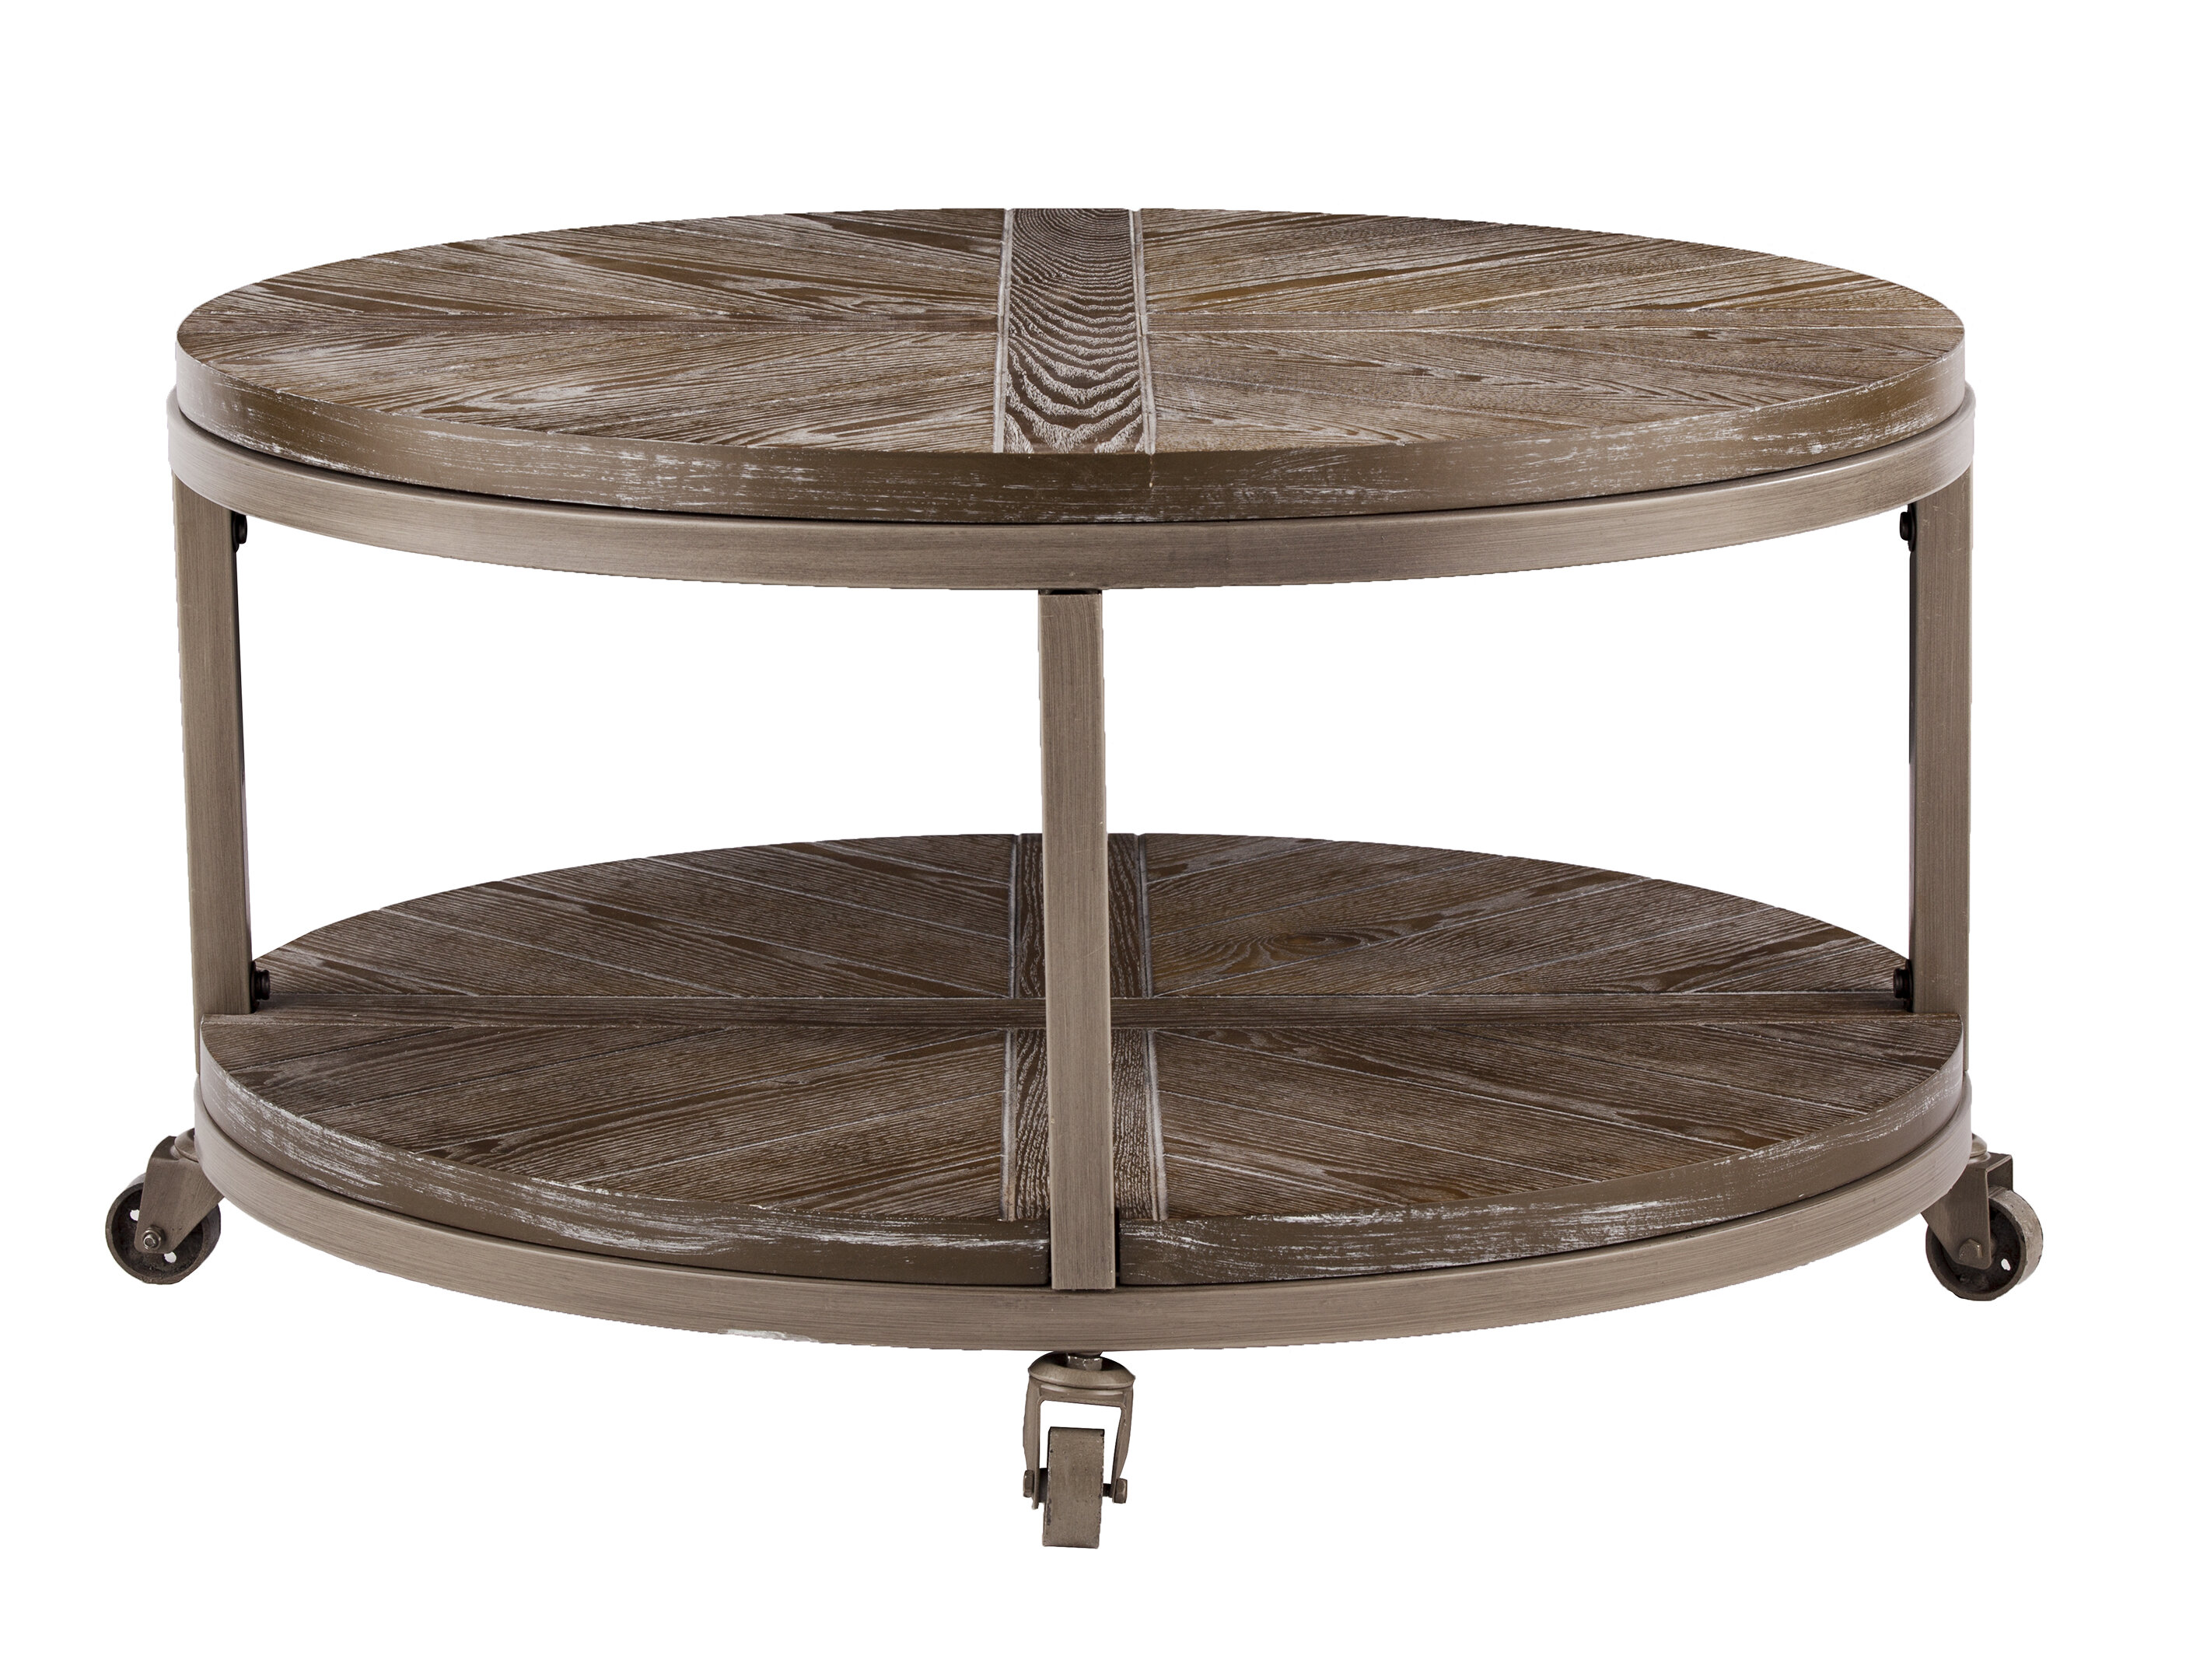 - Union Rustic Brien Urban Industrial Round Cocktail Table, White